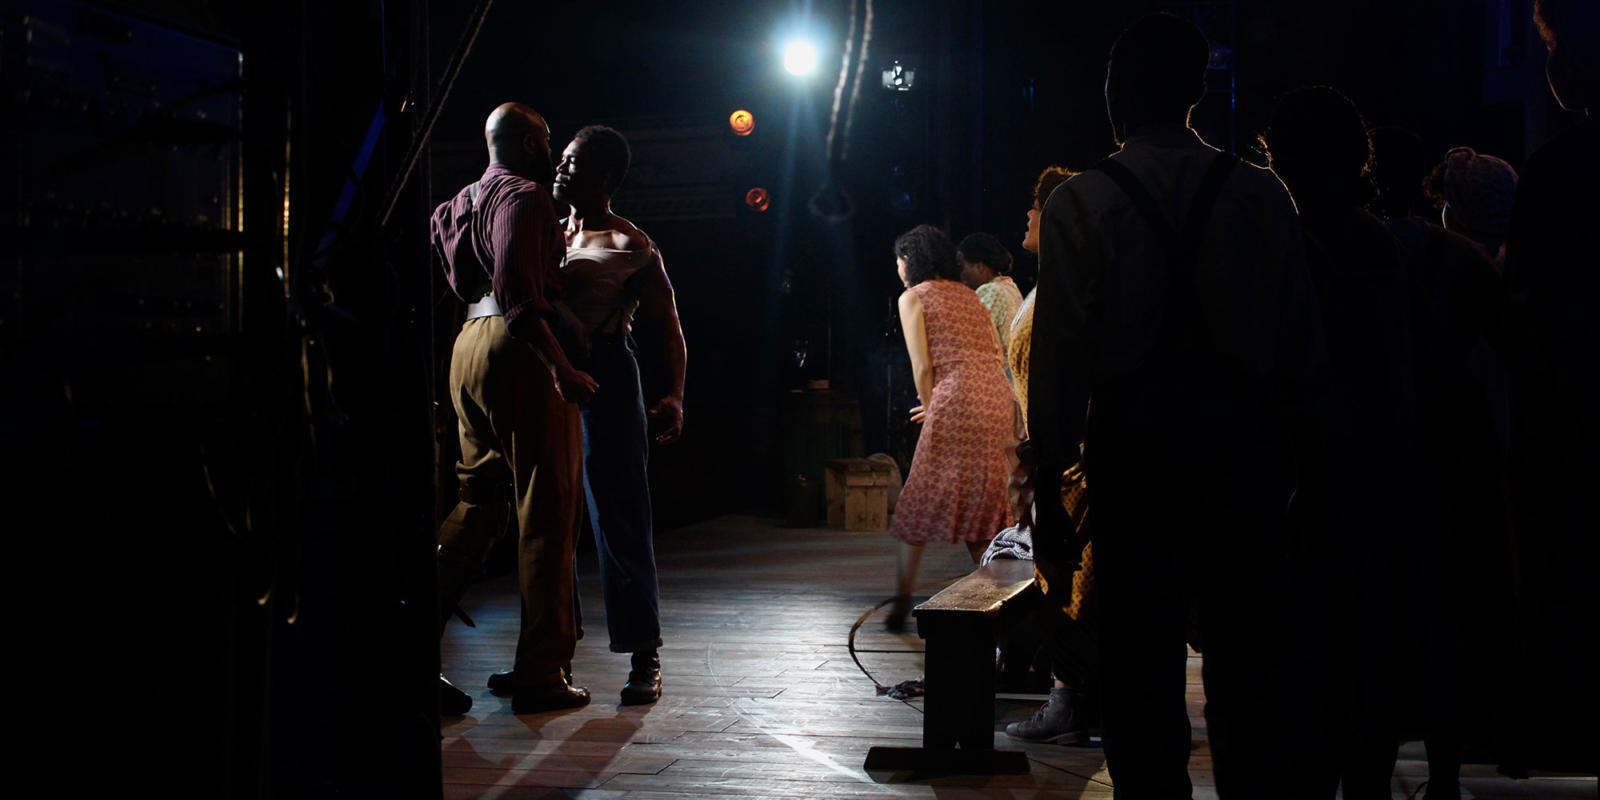 Eric Greene (Porgy), Nmon Ford (Crown) and Nicole Cabell (Bess) on stage